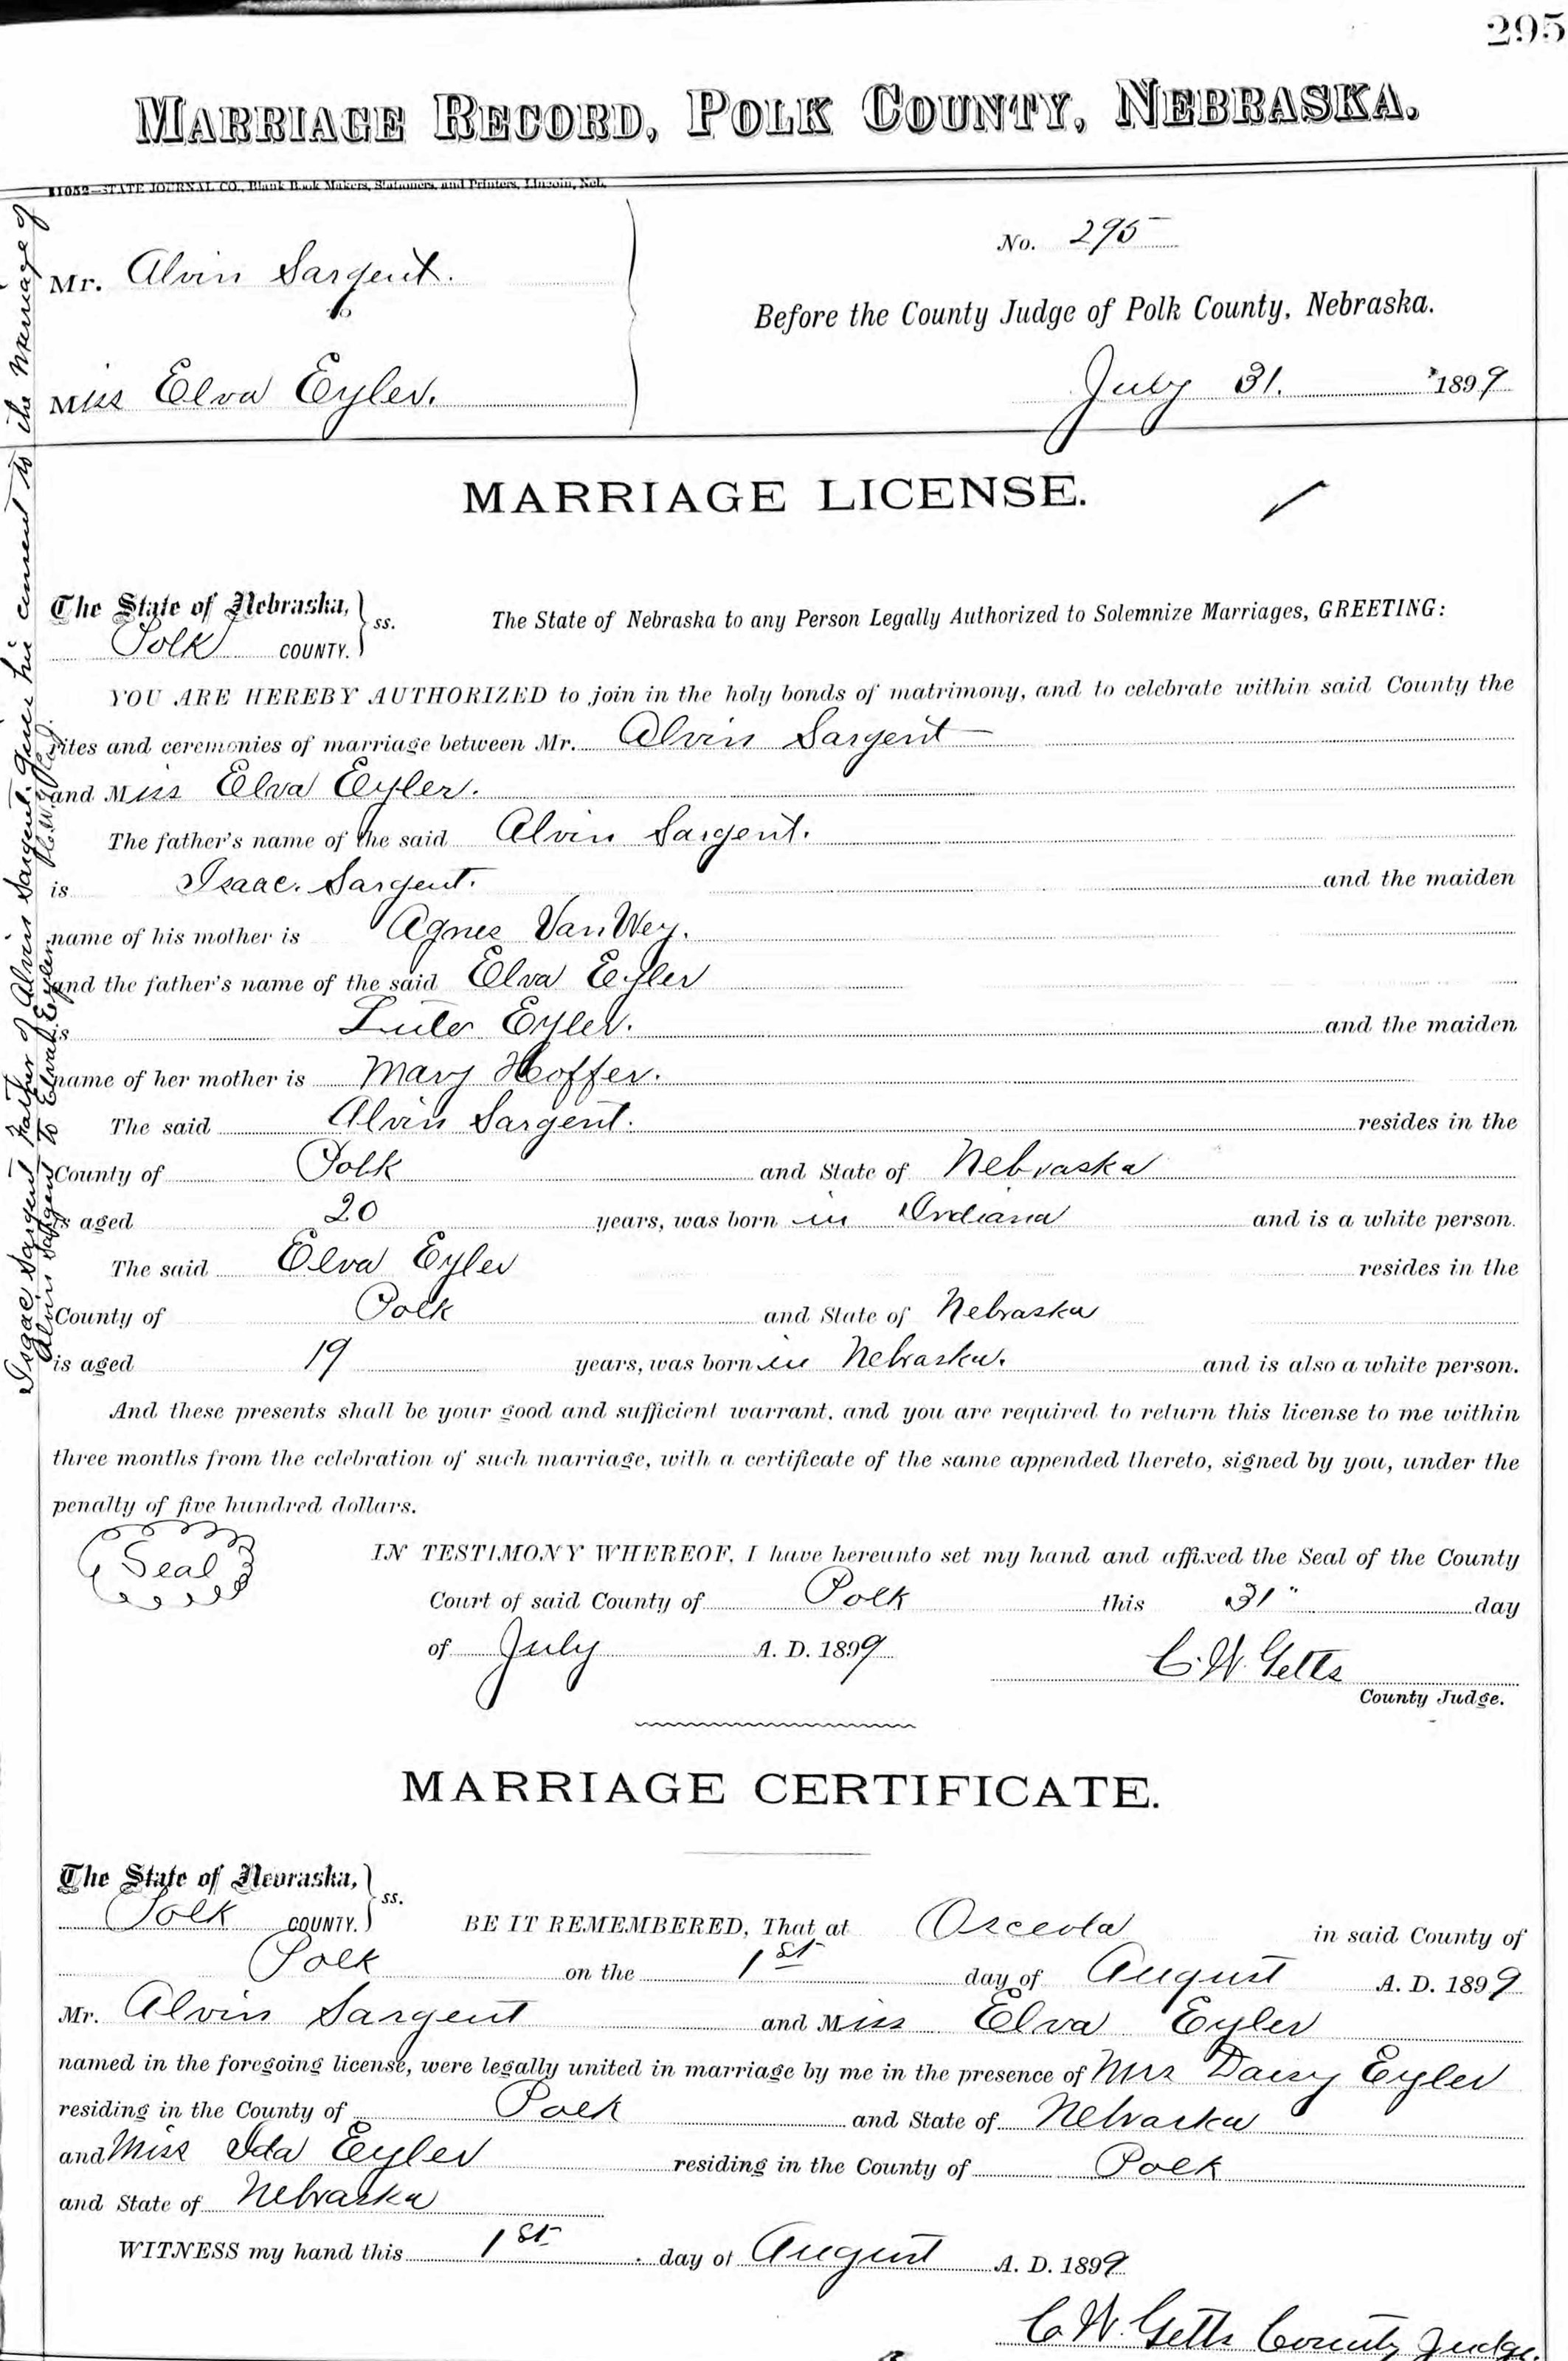 Alvin Sargent - Daisy Eyler - marriage certificate